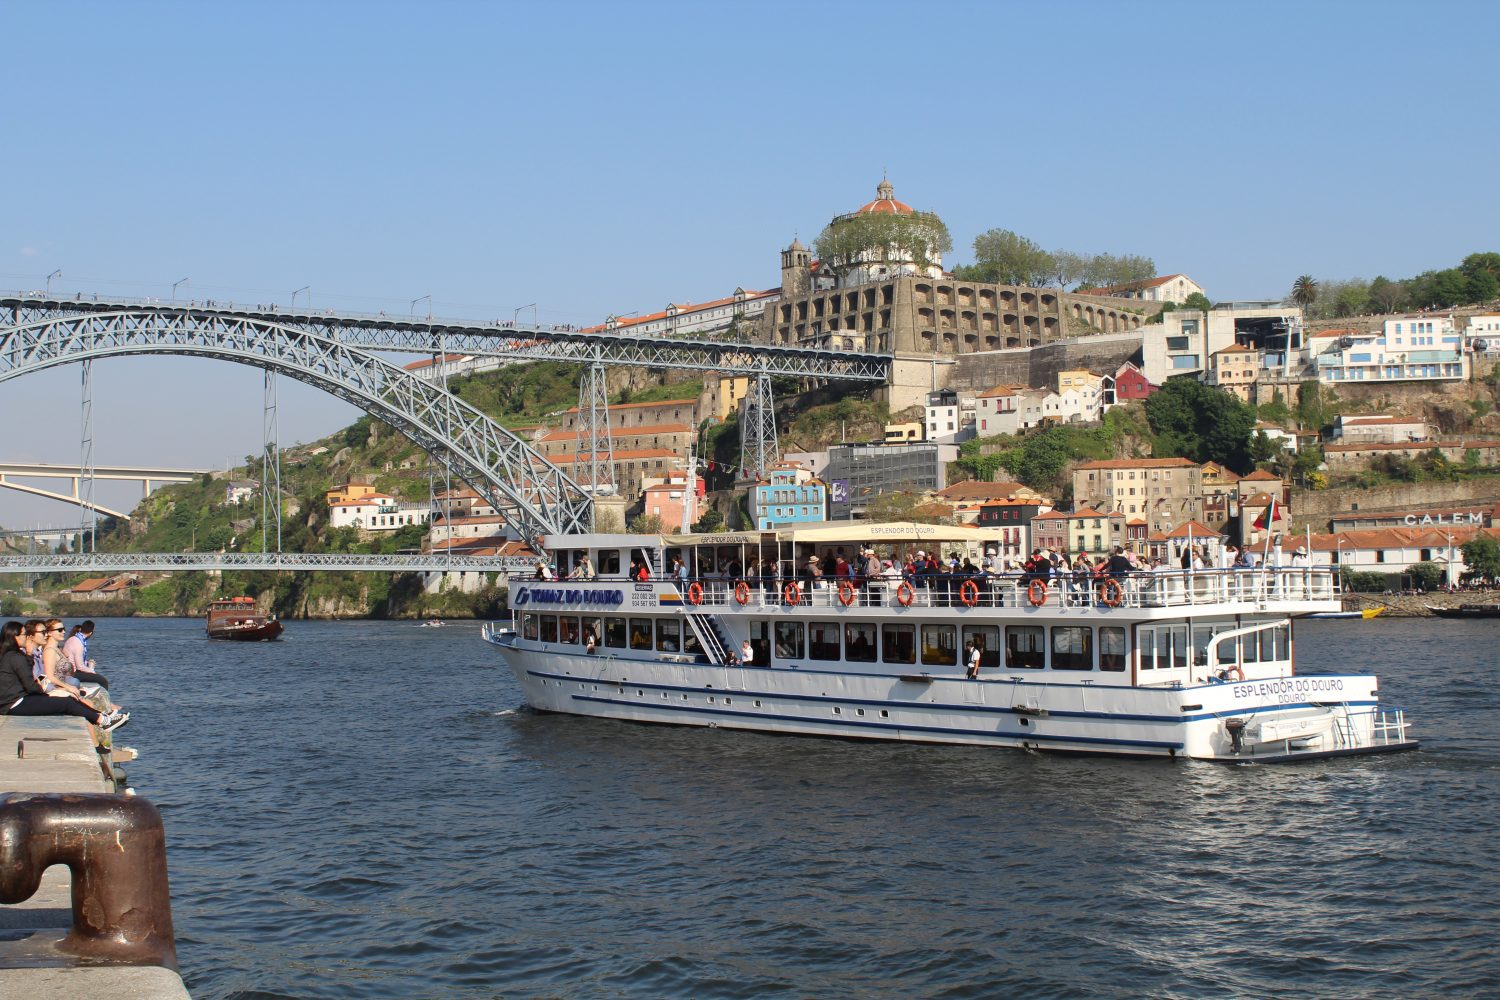 Boat douro cruise view over Luis I bridge